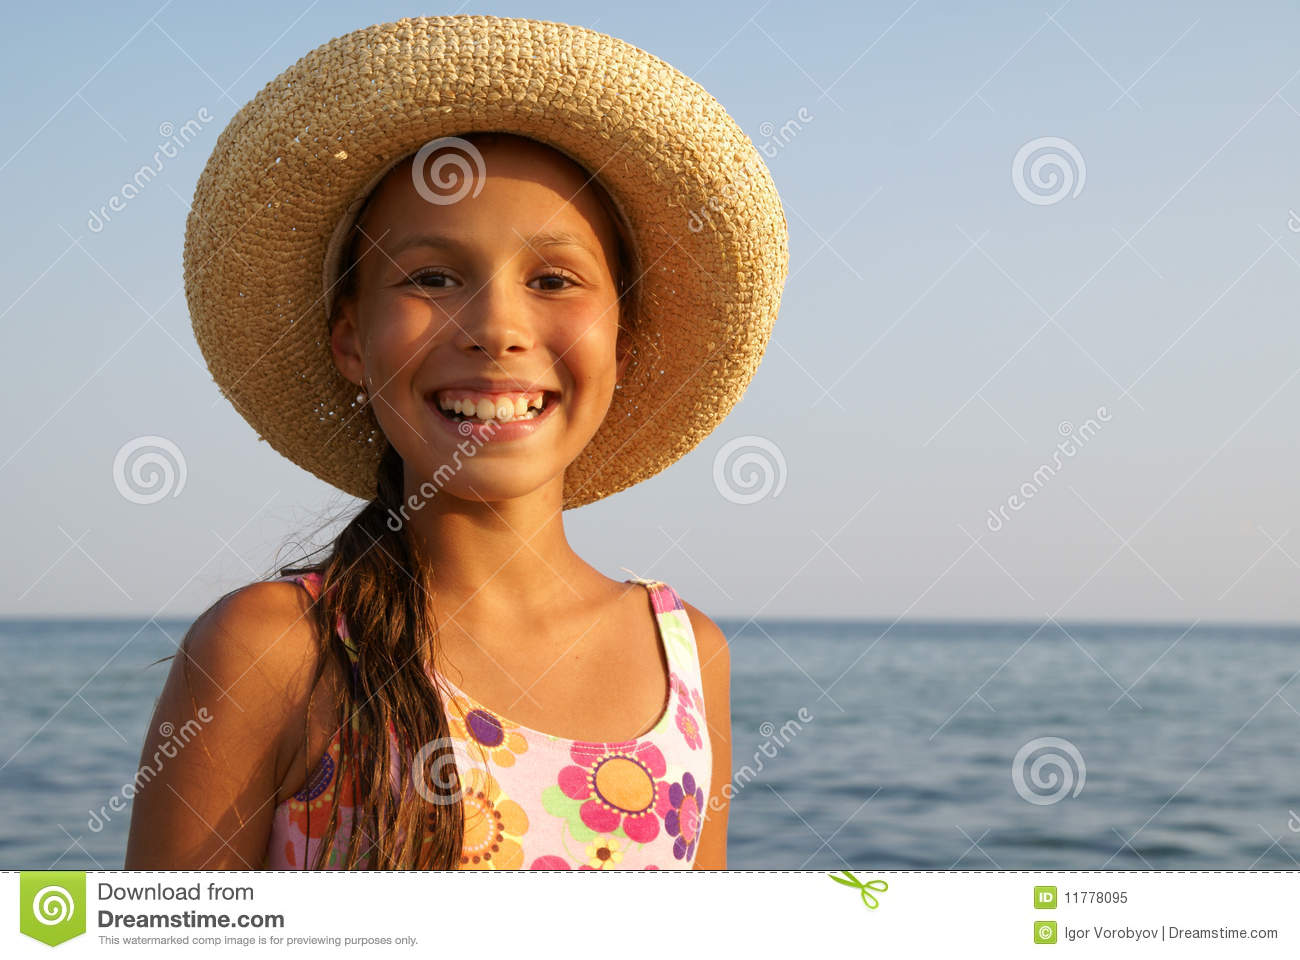 Preteen girl in straw hat enjoying sun-bath on sea beach.